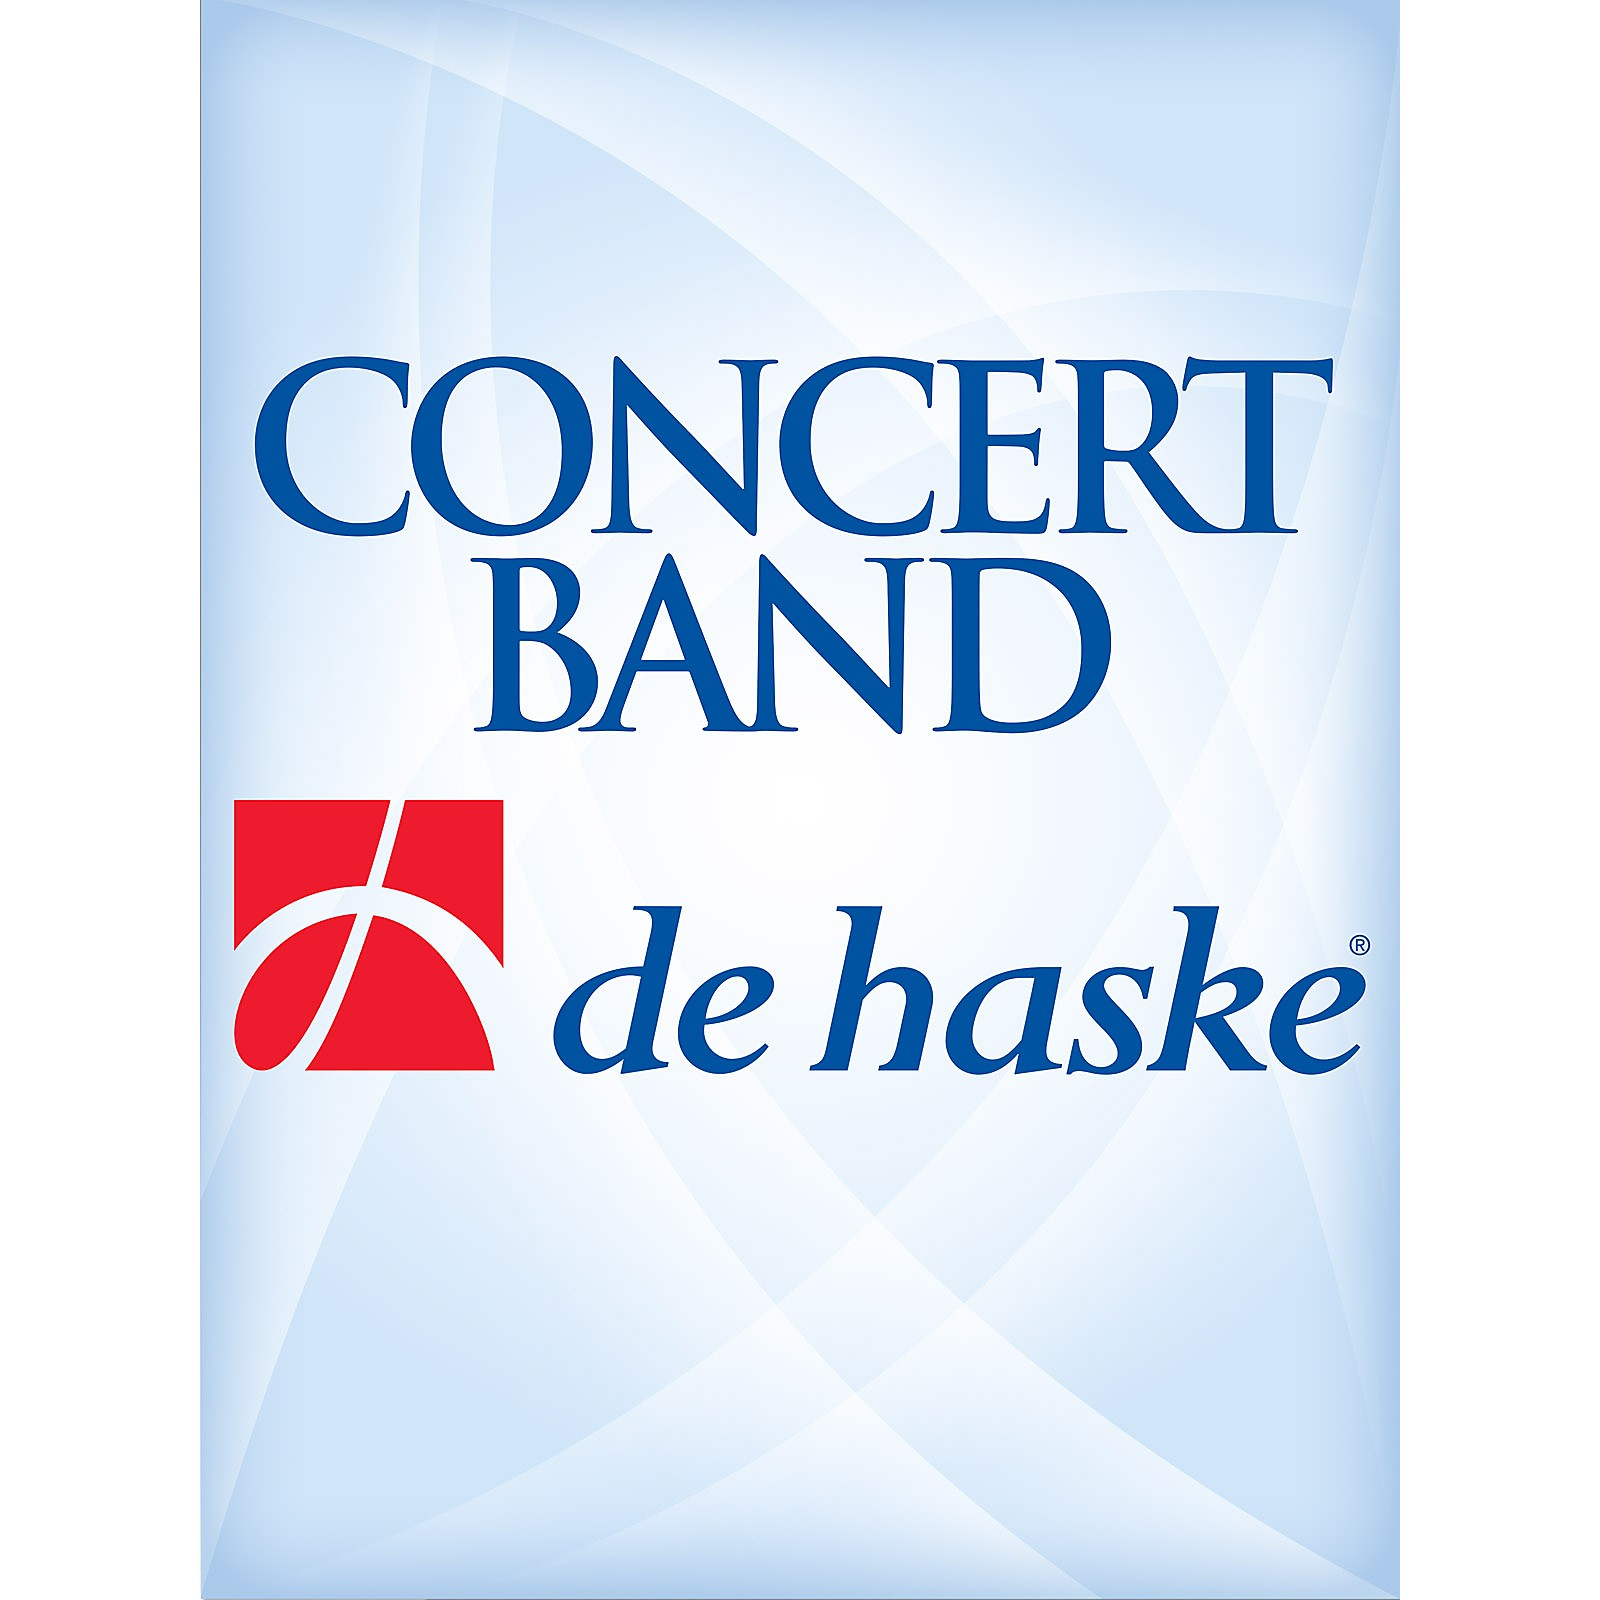 De Haske Music Ballad (Score and Parts) Concert Band Composed by Jan Hadermann